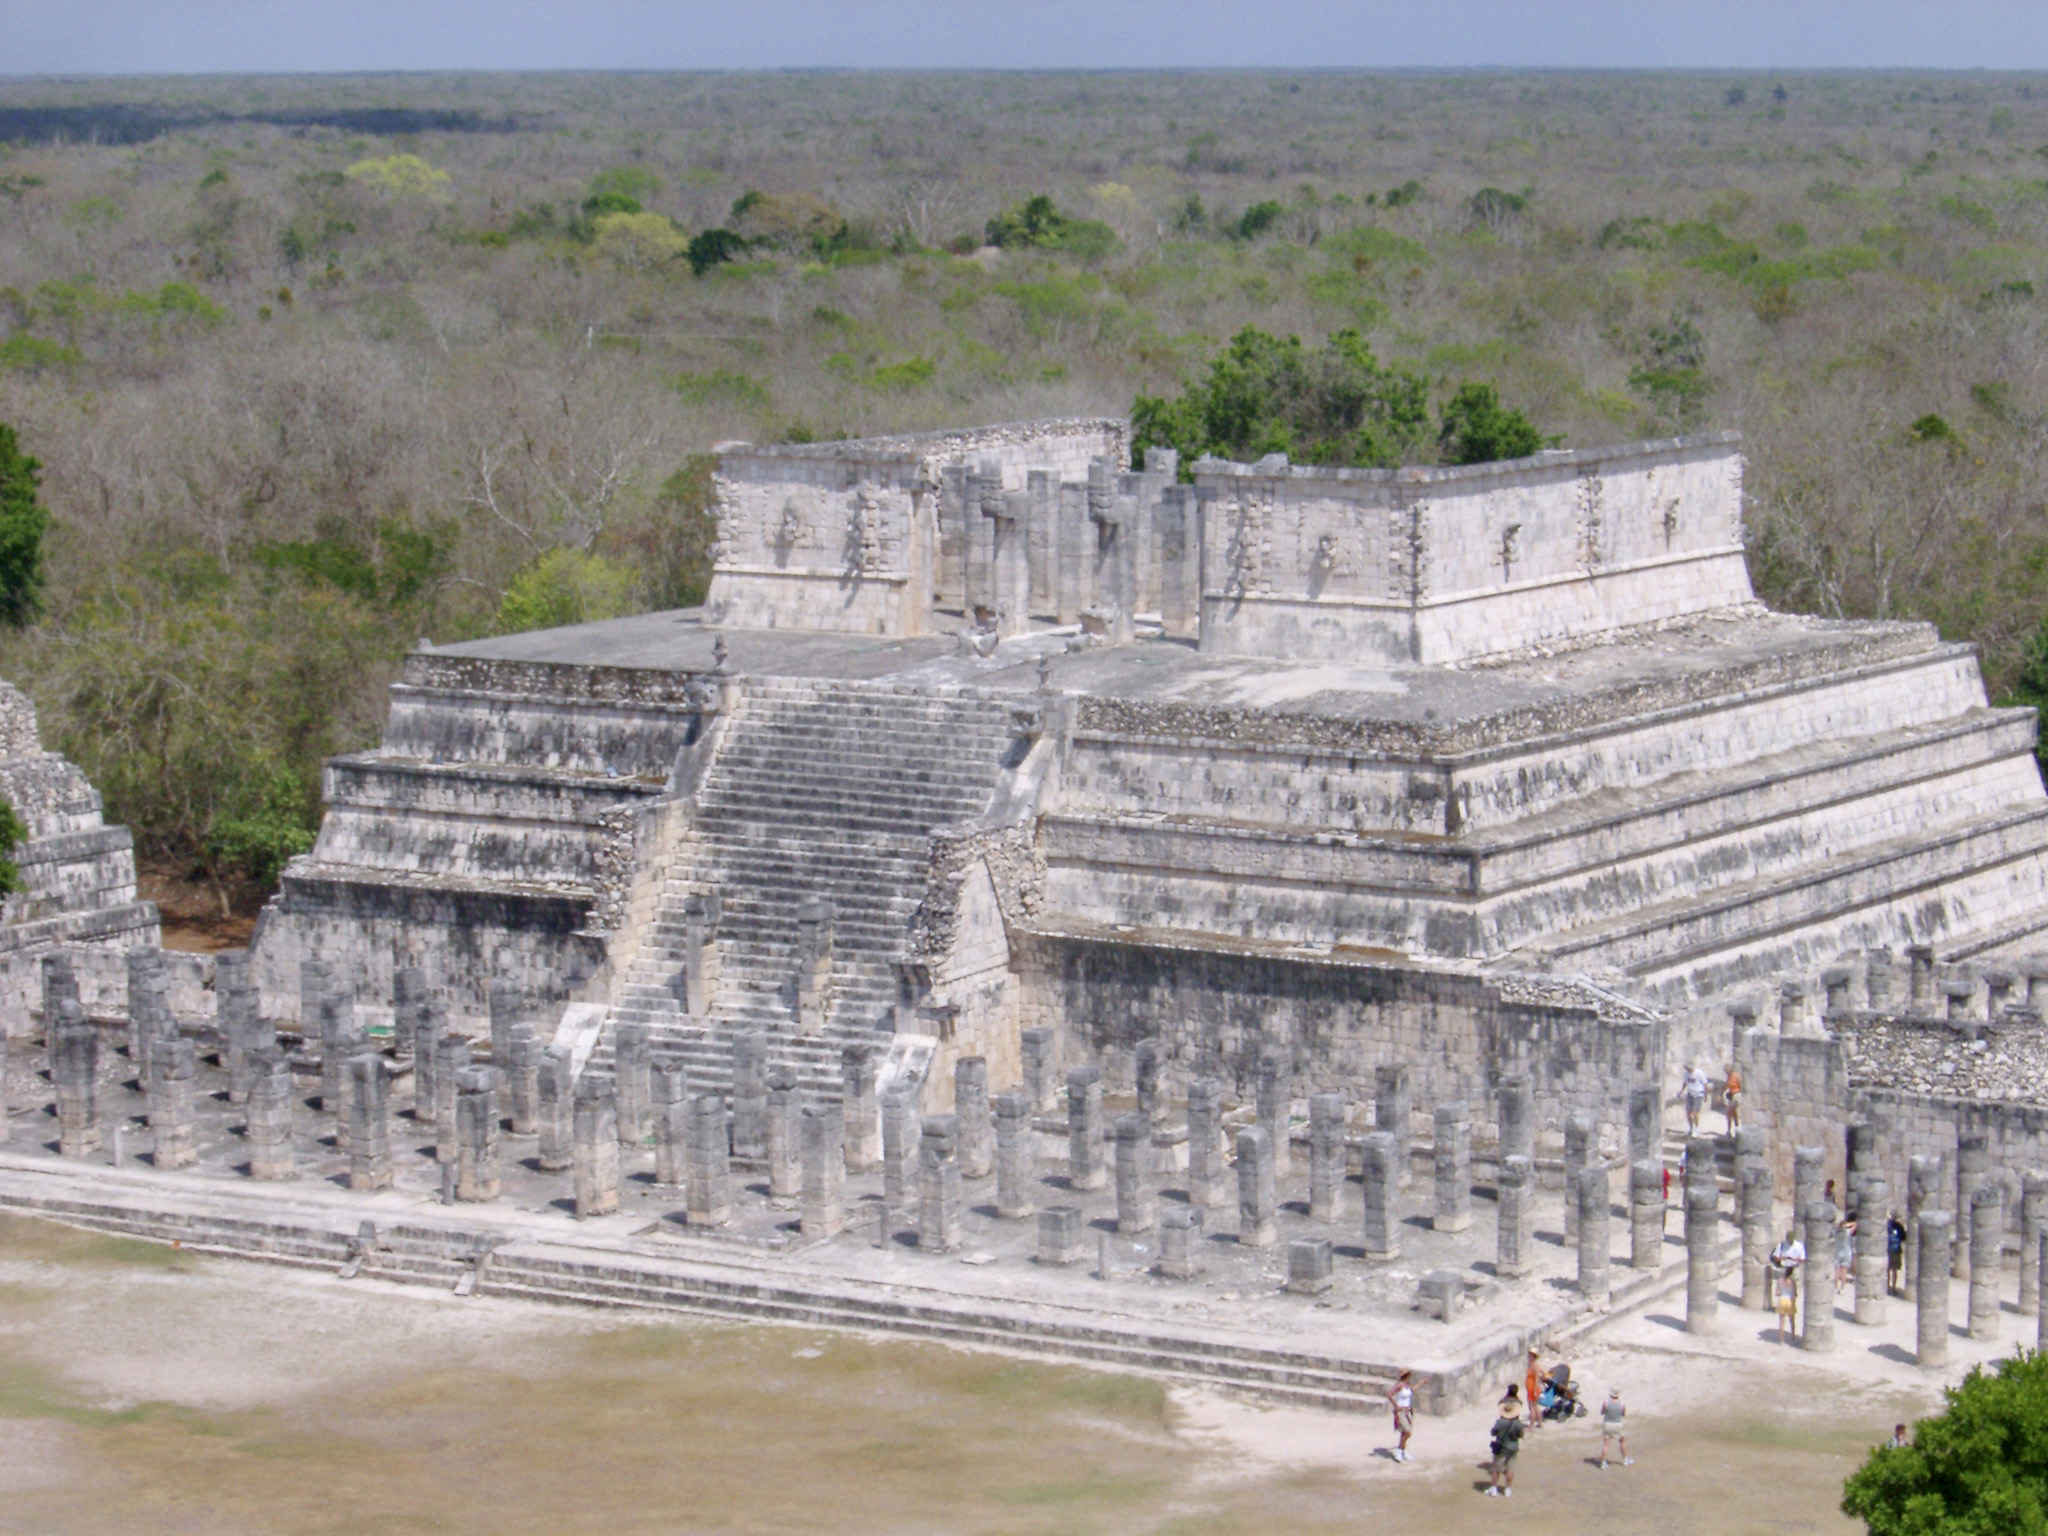 Stone ruins of the Temple of the Warriors in the Chitzen Itza Mayan ruins on the Yucatan Peninsula, Mexico